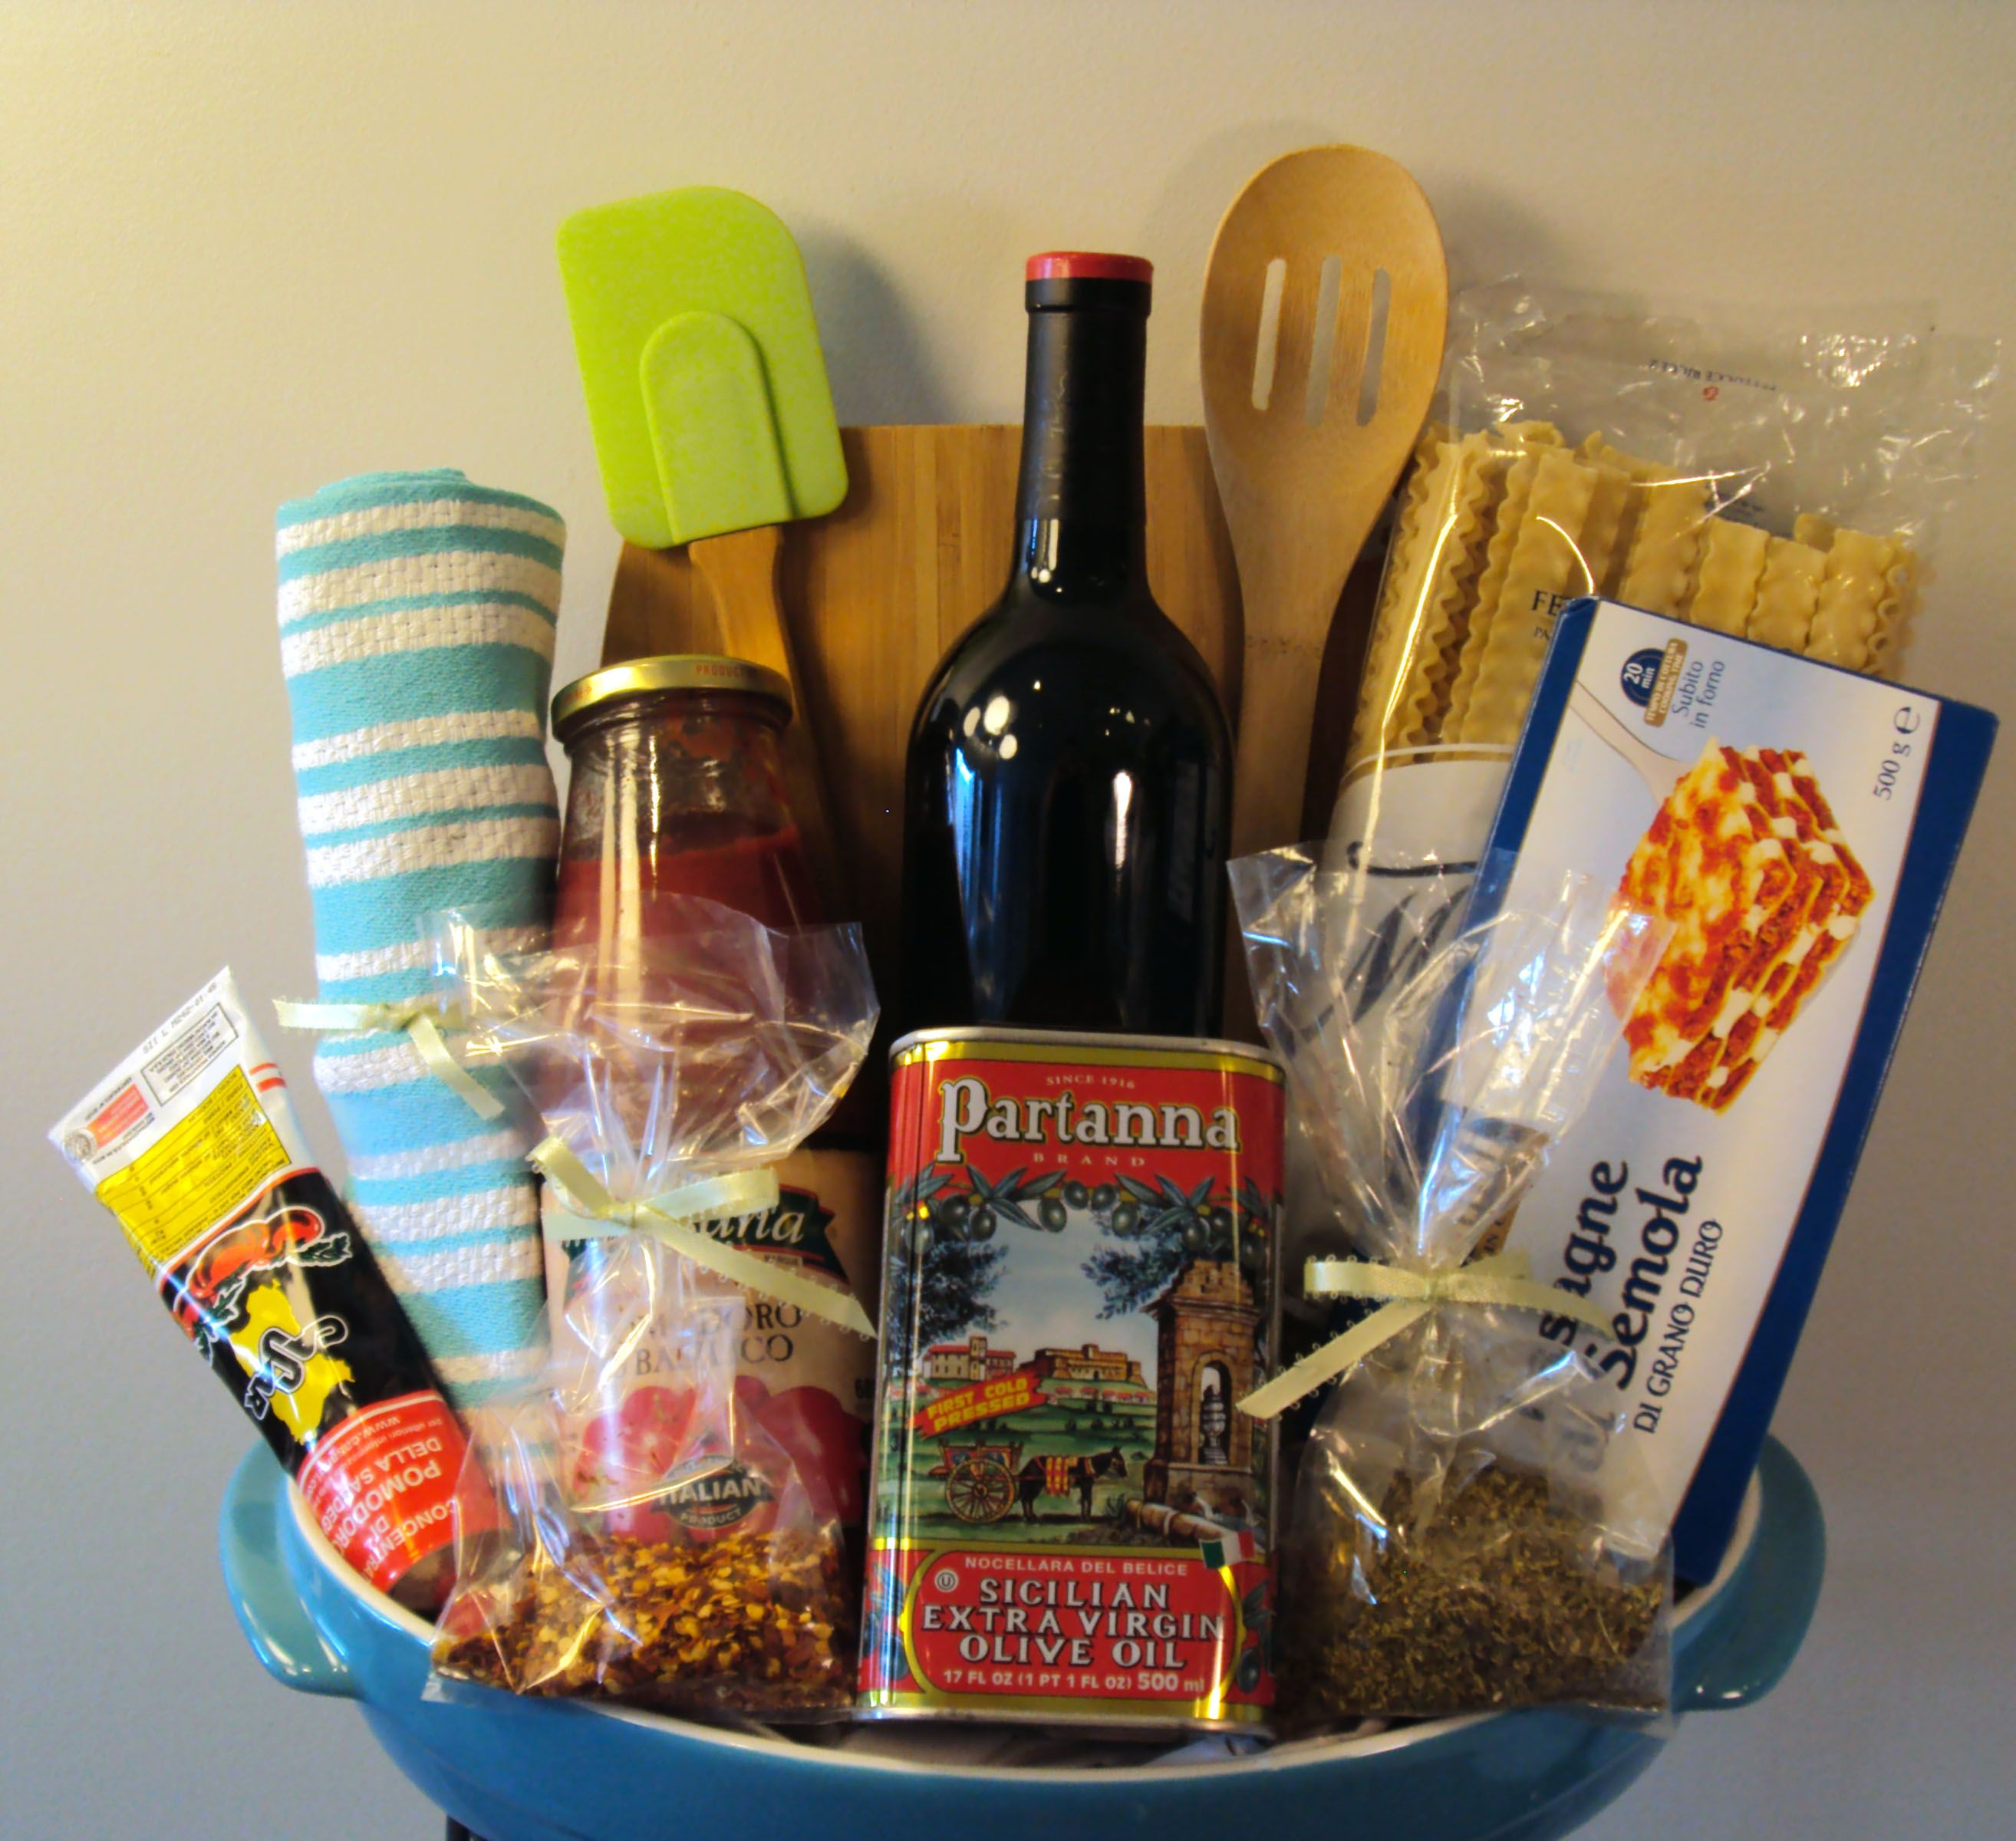 lasagna dinner specialty gift basket 119 this basket includes a